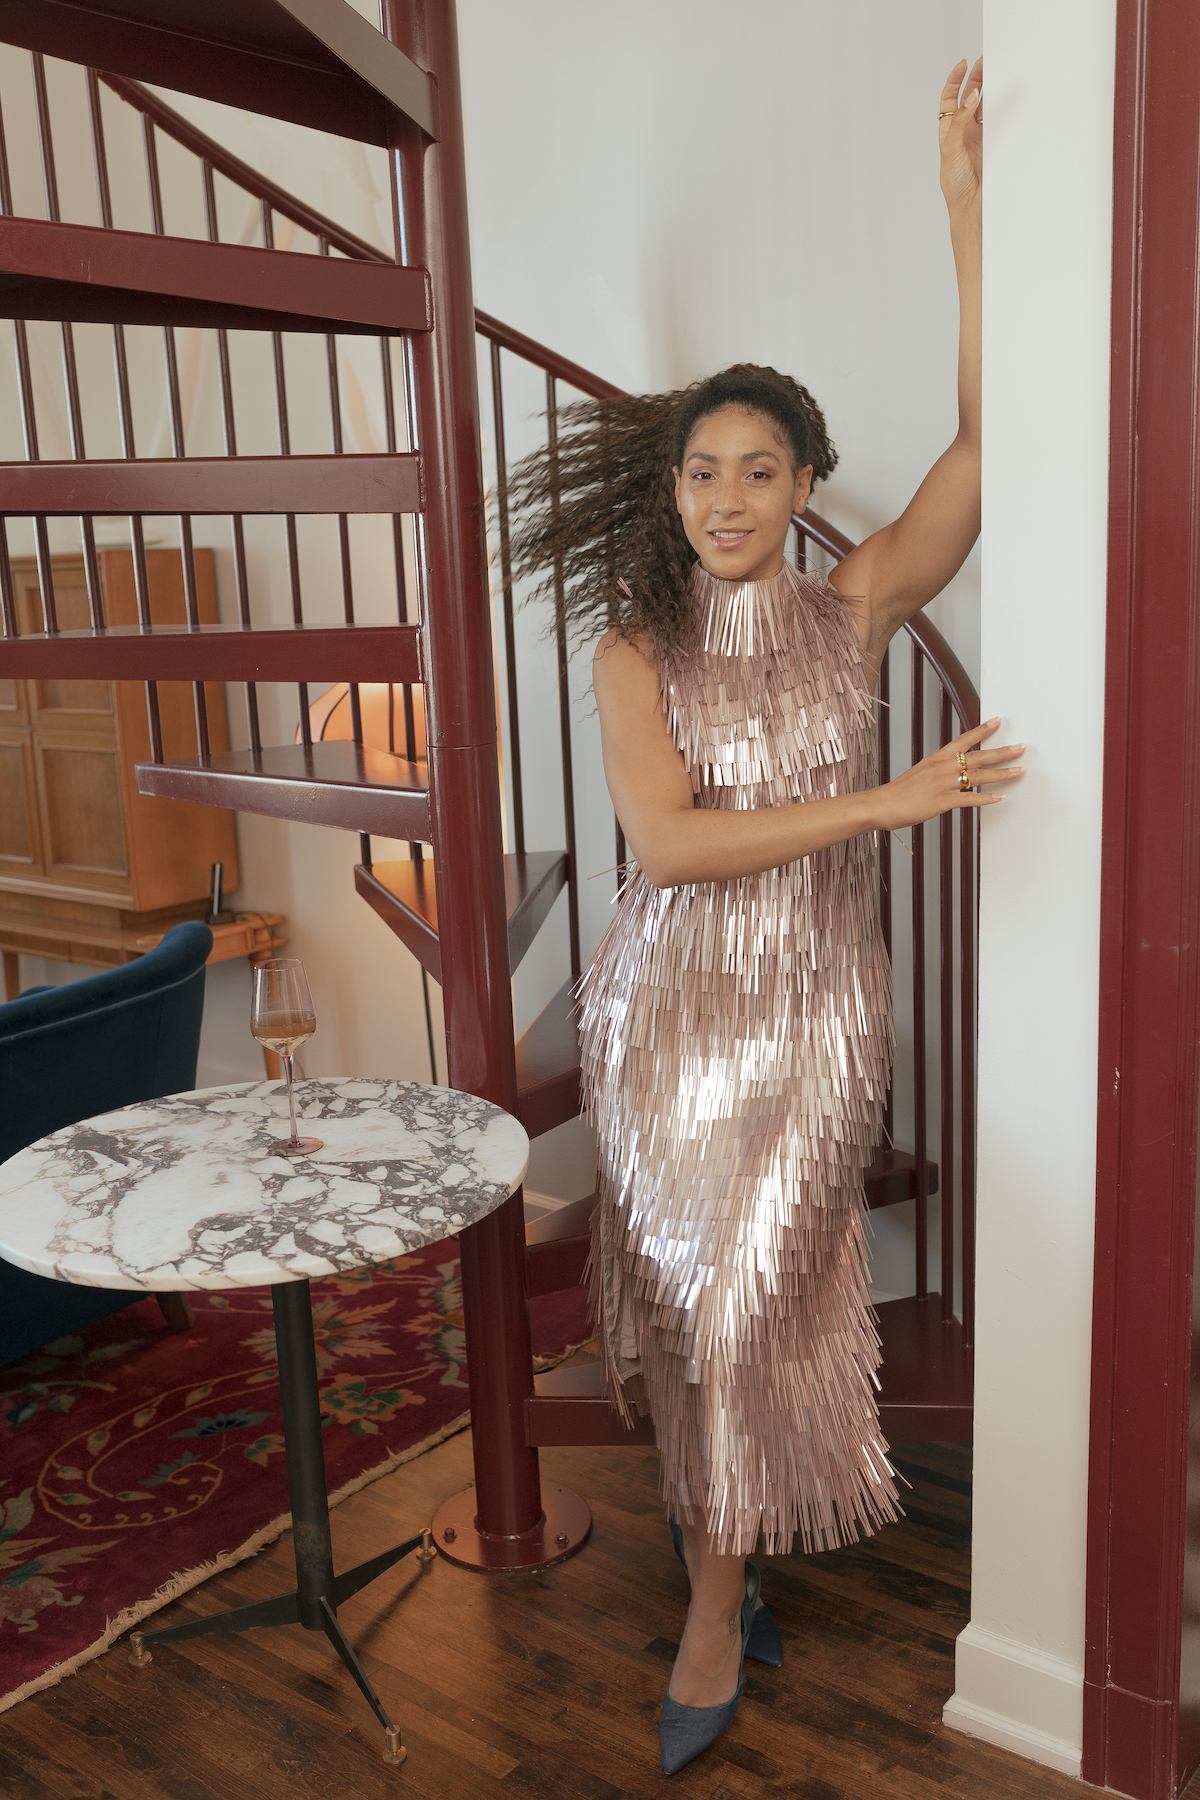 new years eve outfits, black fashion blogger inspiration, sequin party dress, what to wear on New Year's Eve